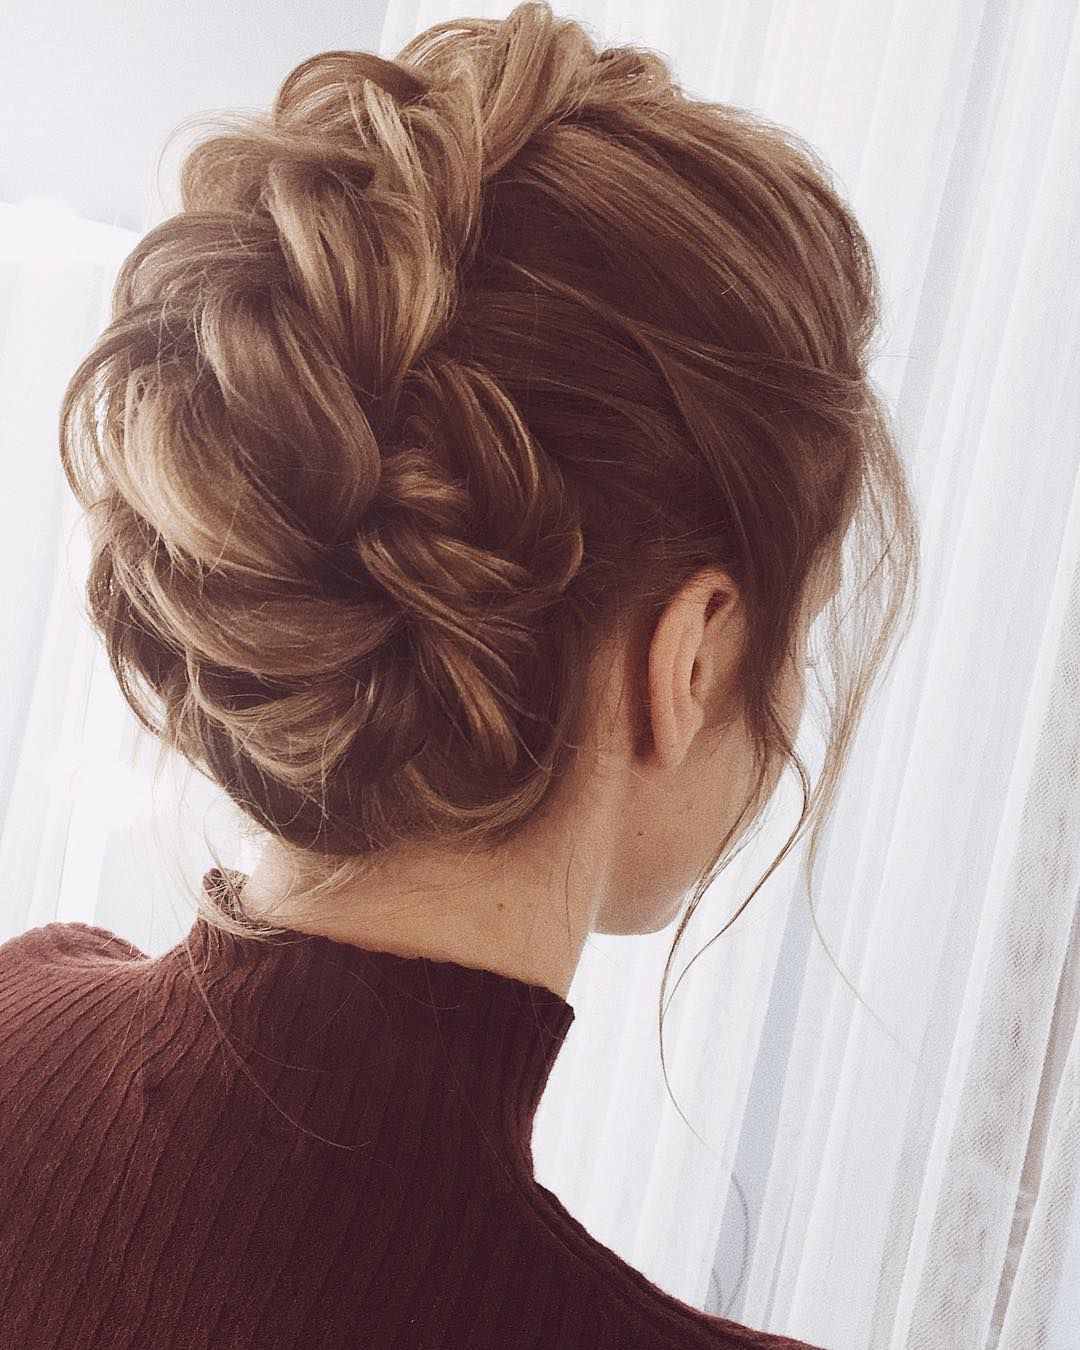 55 amazing updo hairstyles with the wow factor | bridal